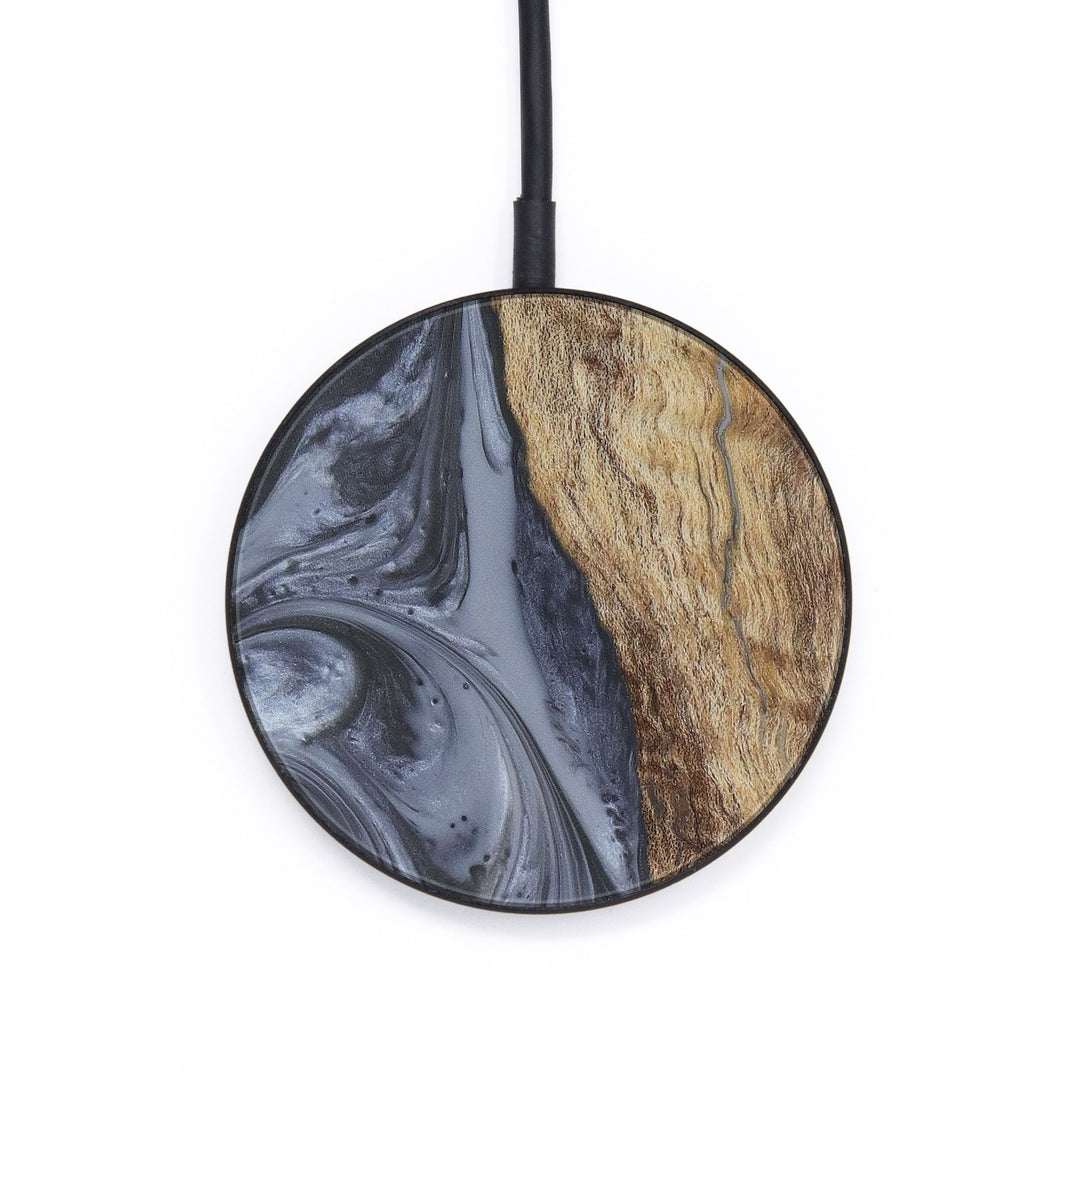 Circle Wood+Resin Wireless Charger - Maressa (Gunmetal, 407173)